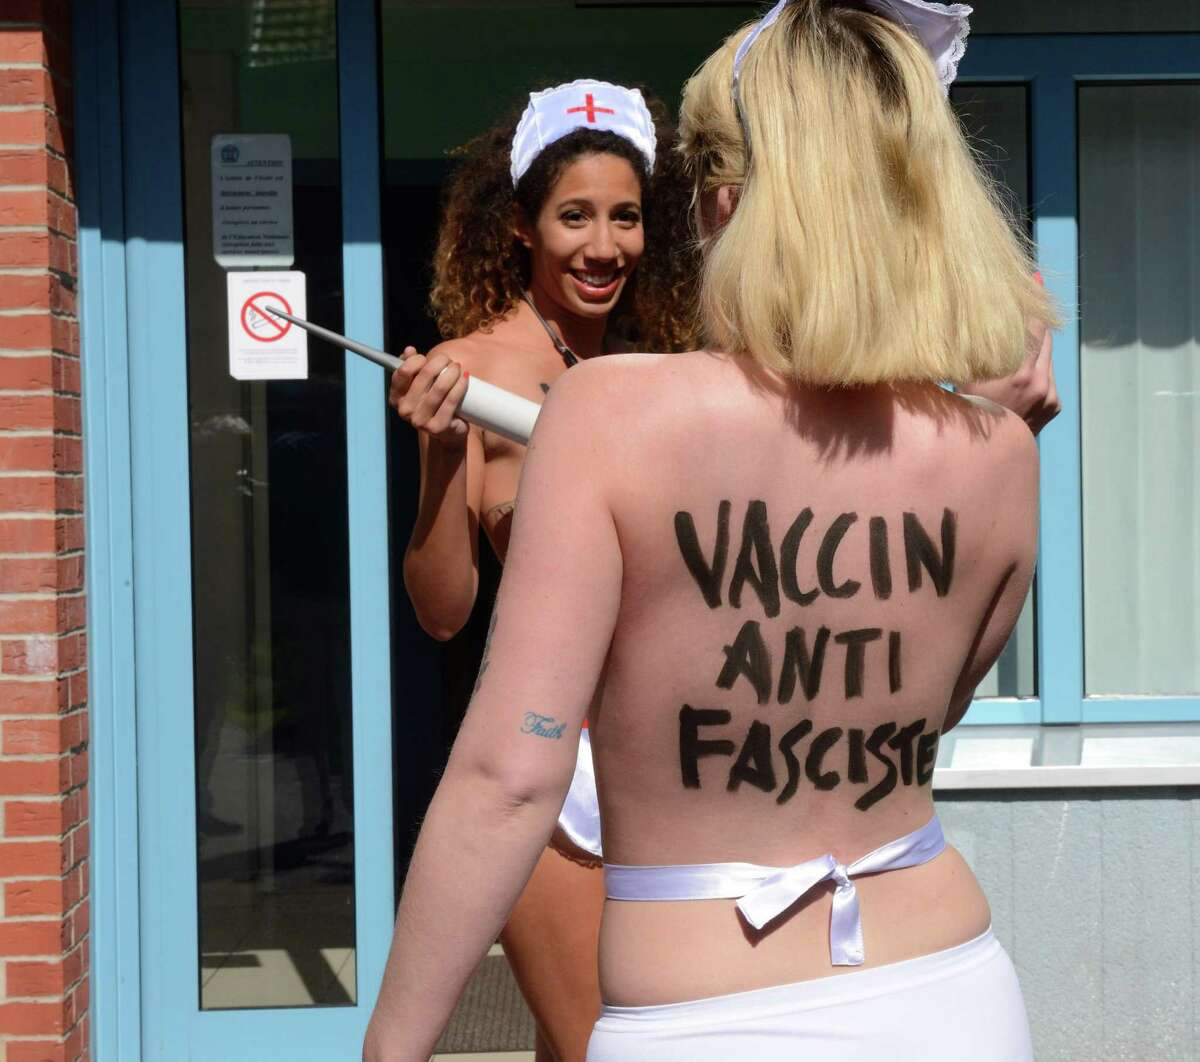 Femen activists take part in a protest after the vote of French far-right Front National (FN) party president in front of a polling station in Henin-Beaumont on May 25, 2014 during the vote for the European Parliament elections.